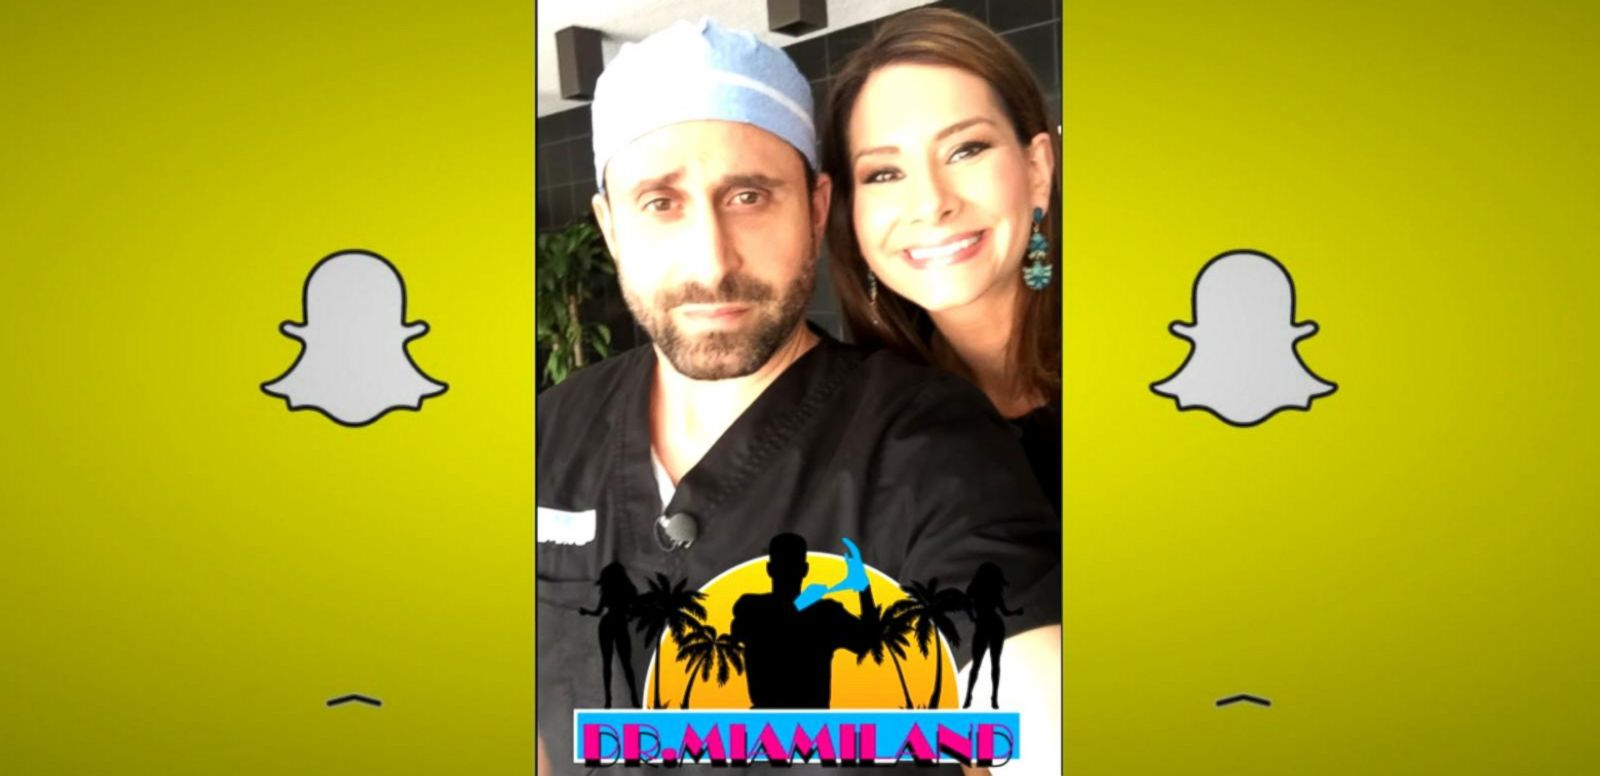 Meet the Plastic Surgeon Who Films His Surgeries Live on Snapchat